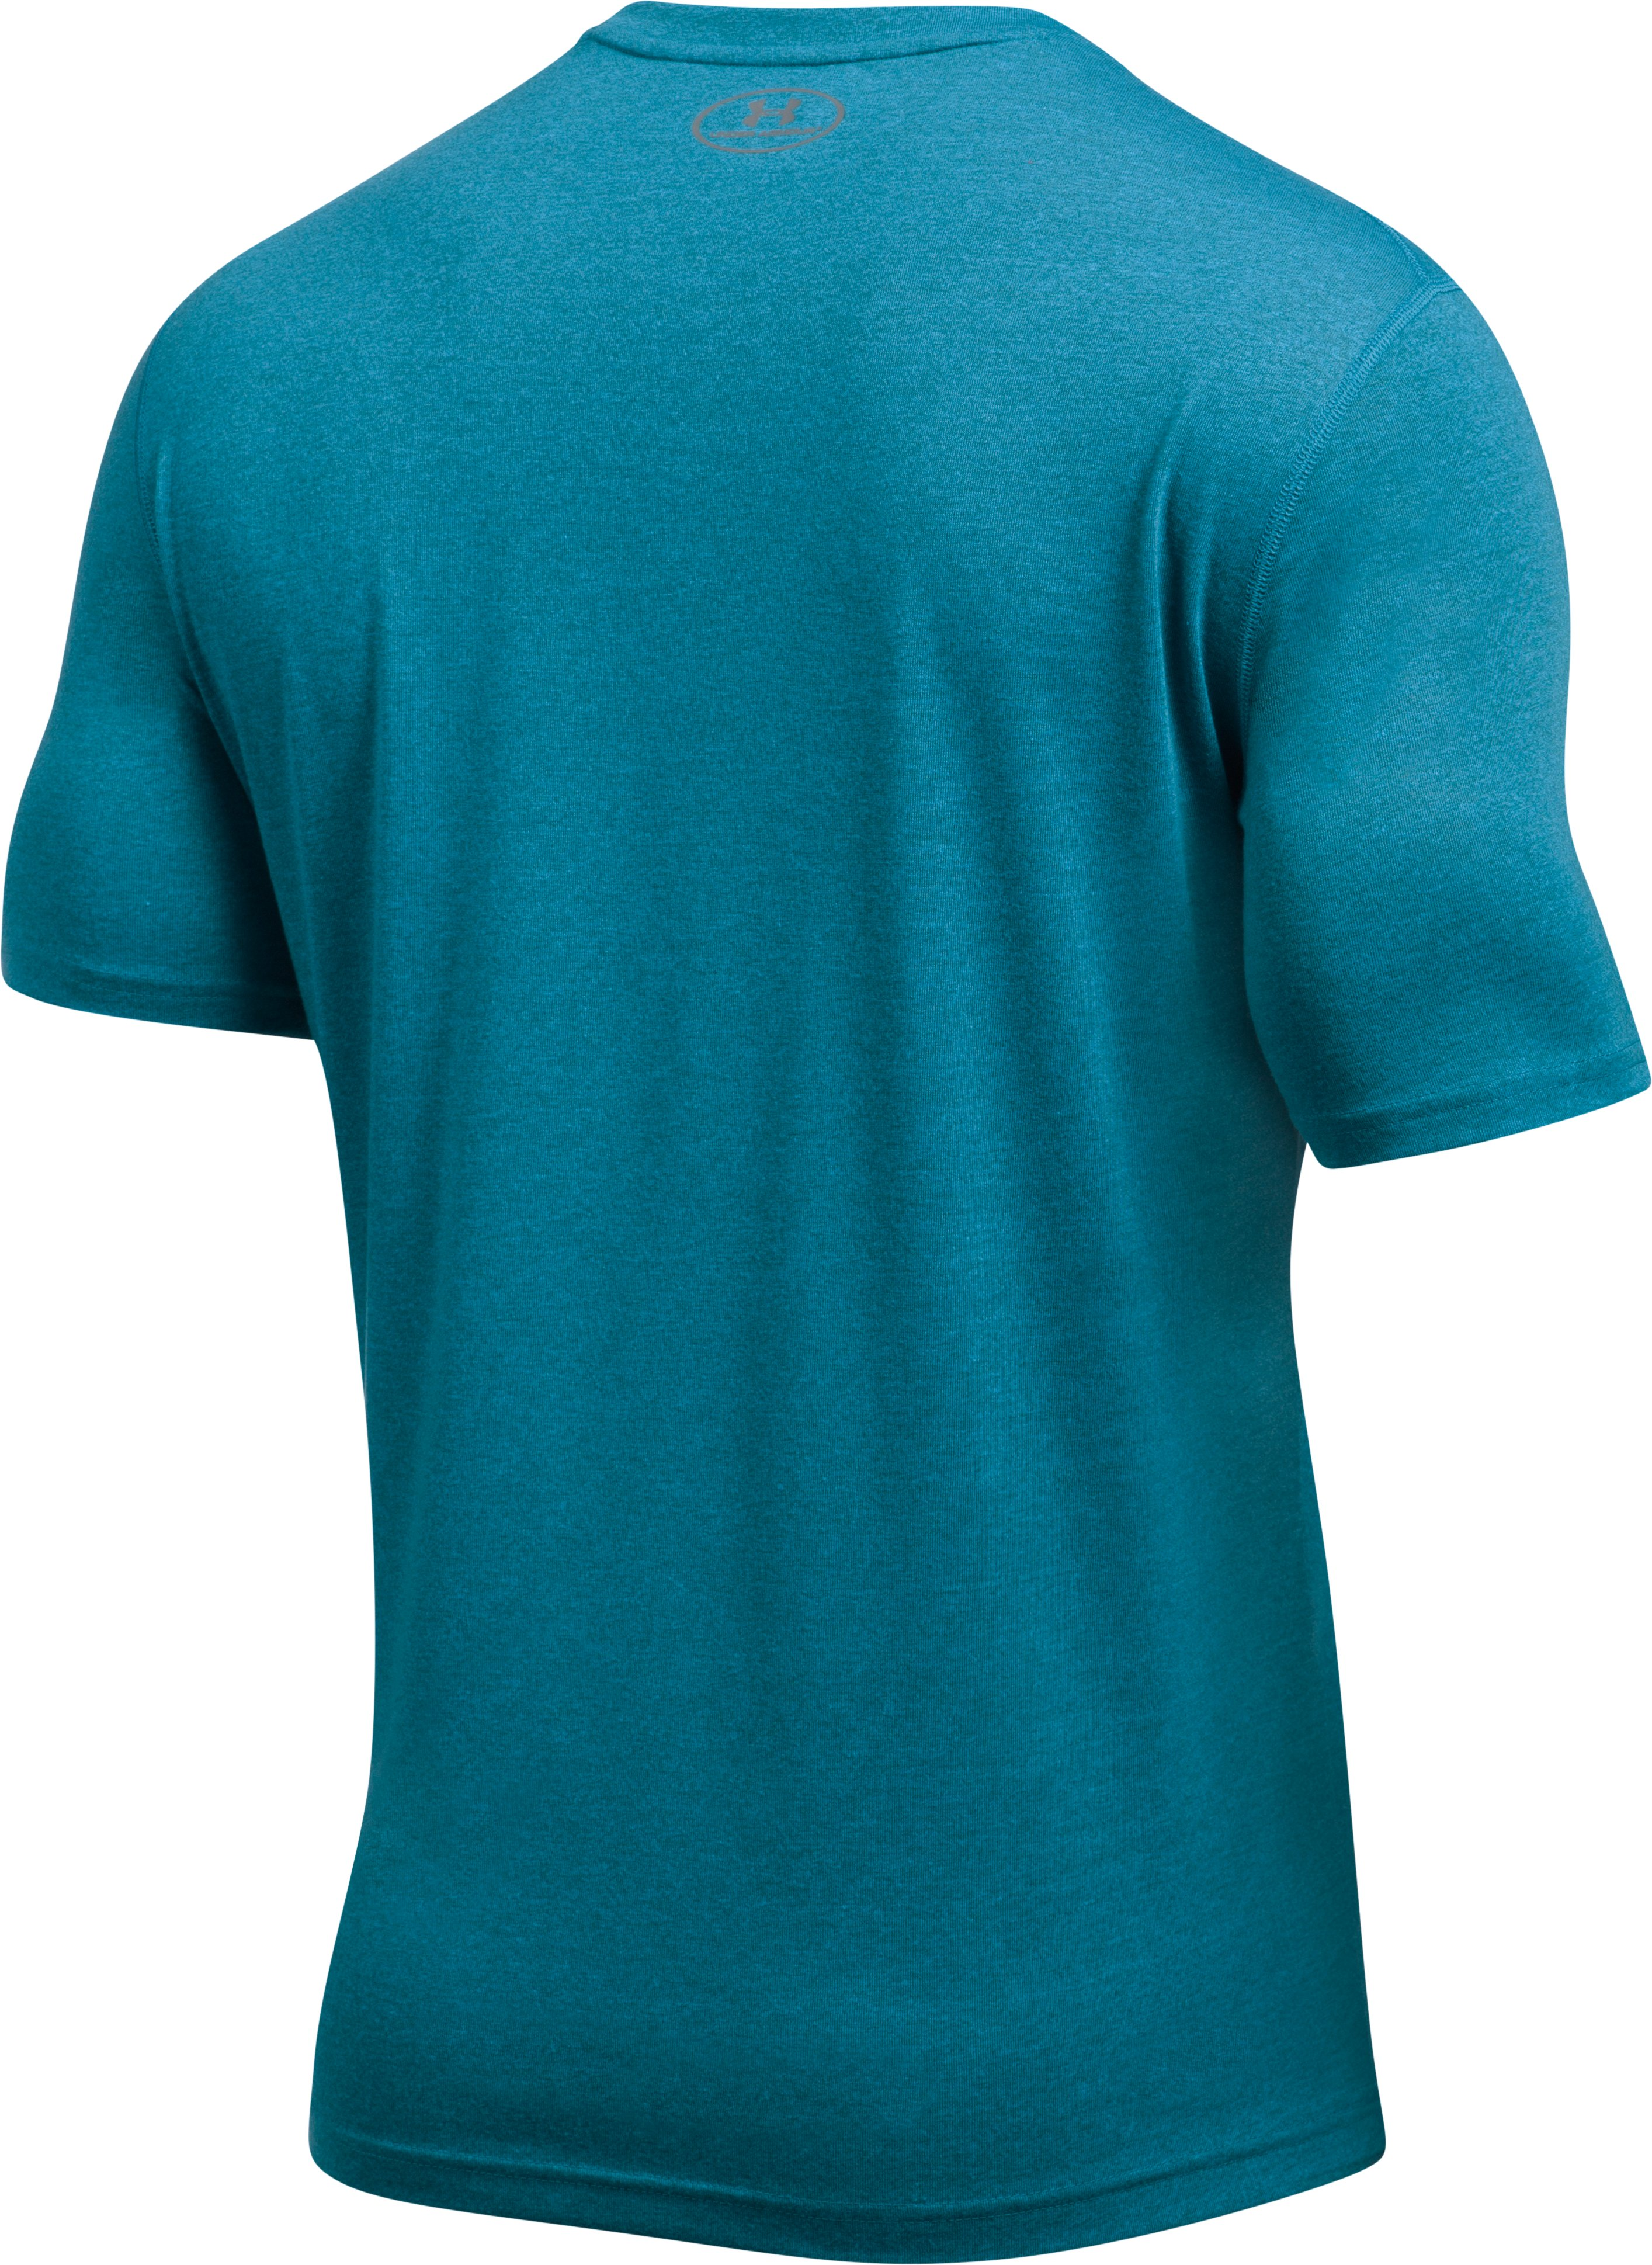 Men's UA Threadborne Siro Twist T-Shirt, BAYOU BLUE, undefined